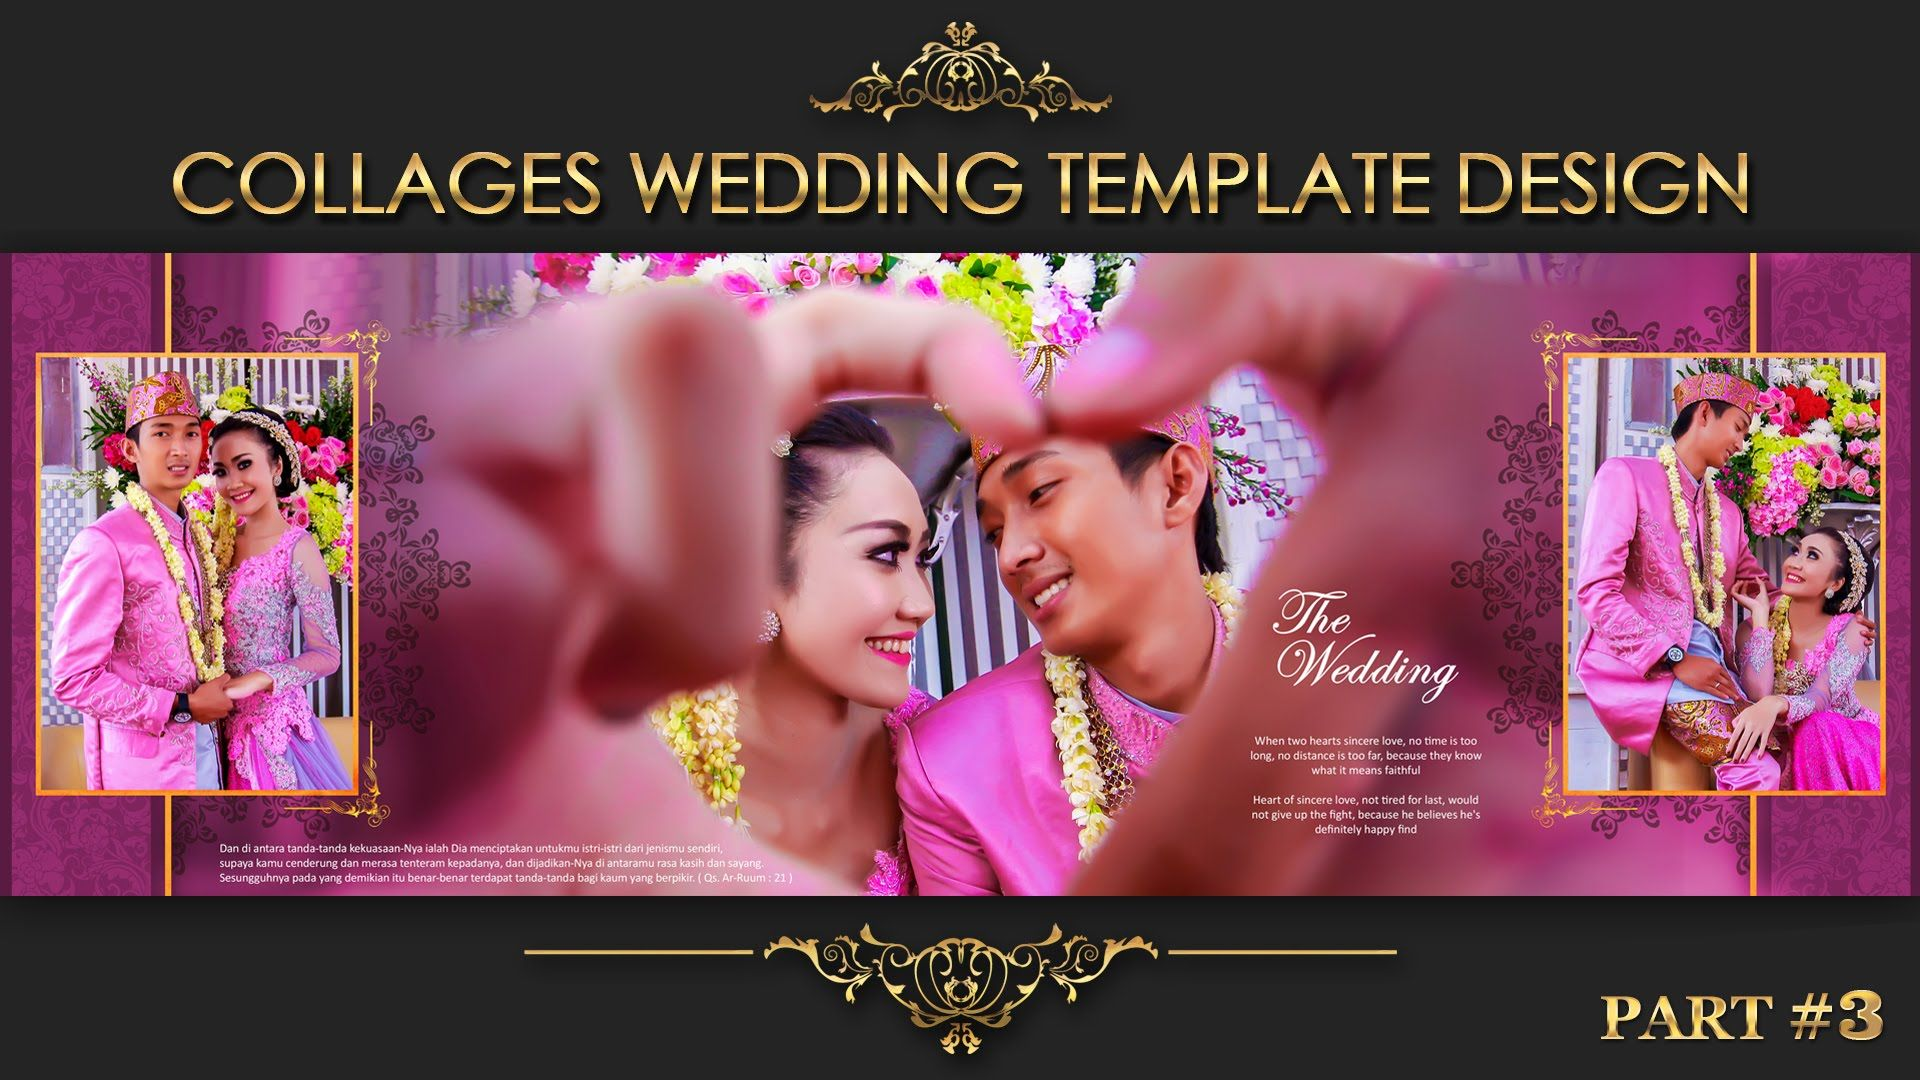 collage wedding album 3 for psd template view in description text